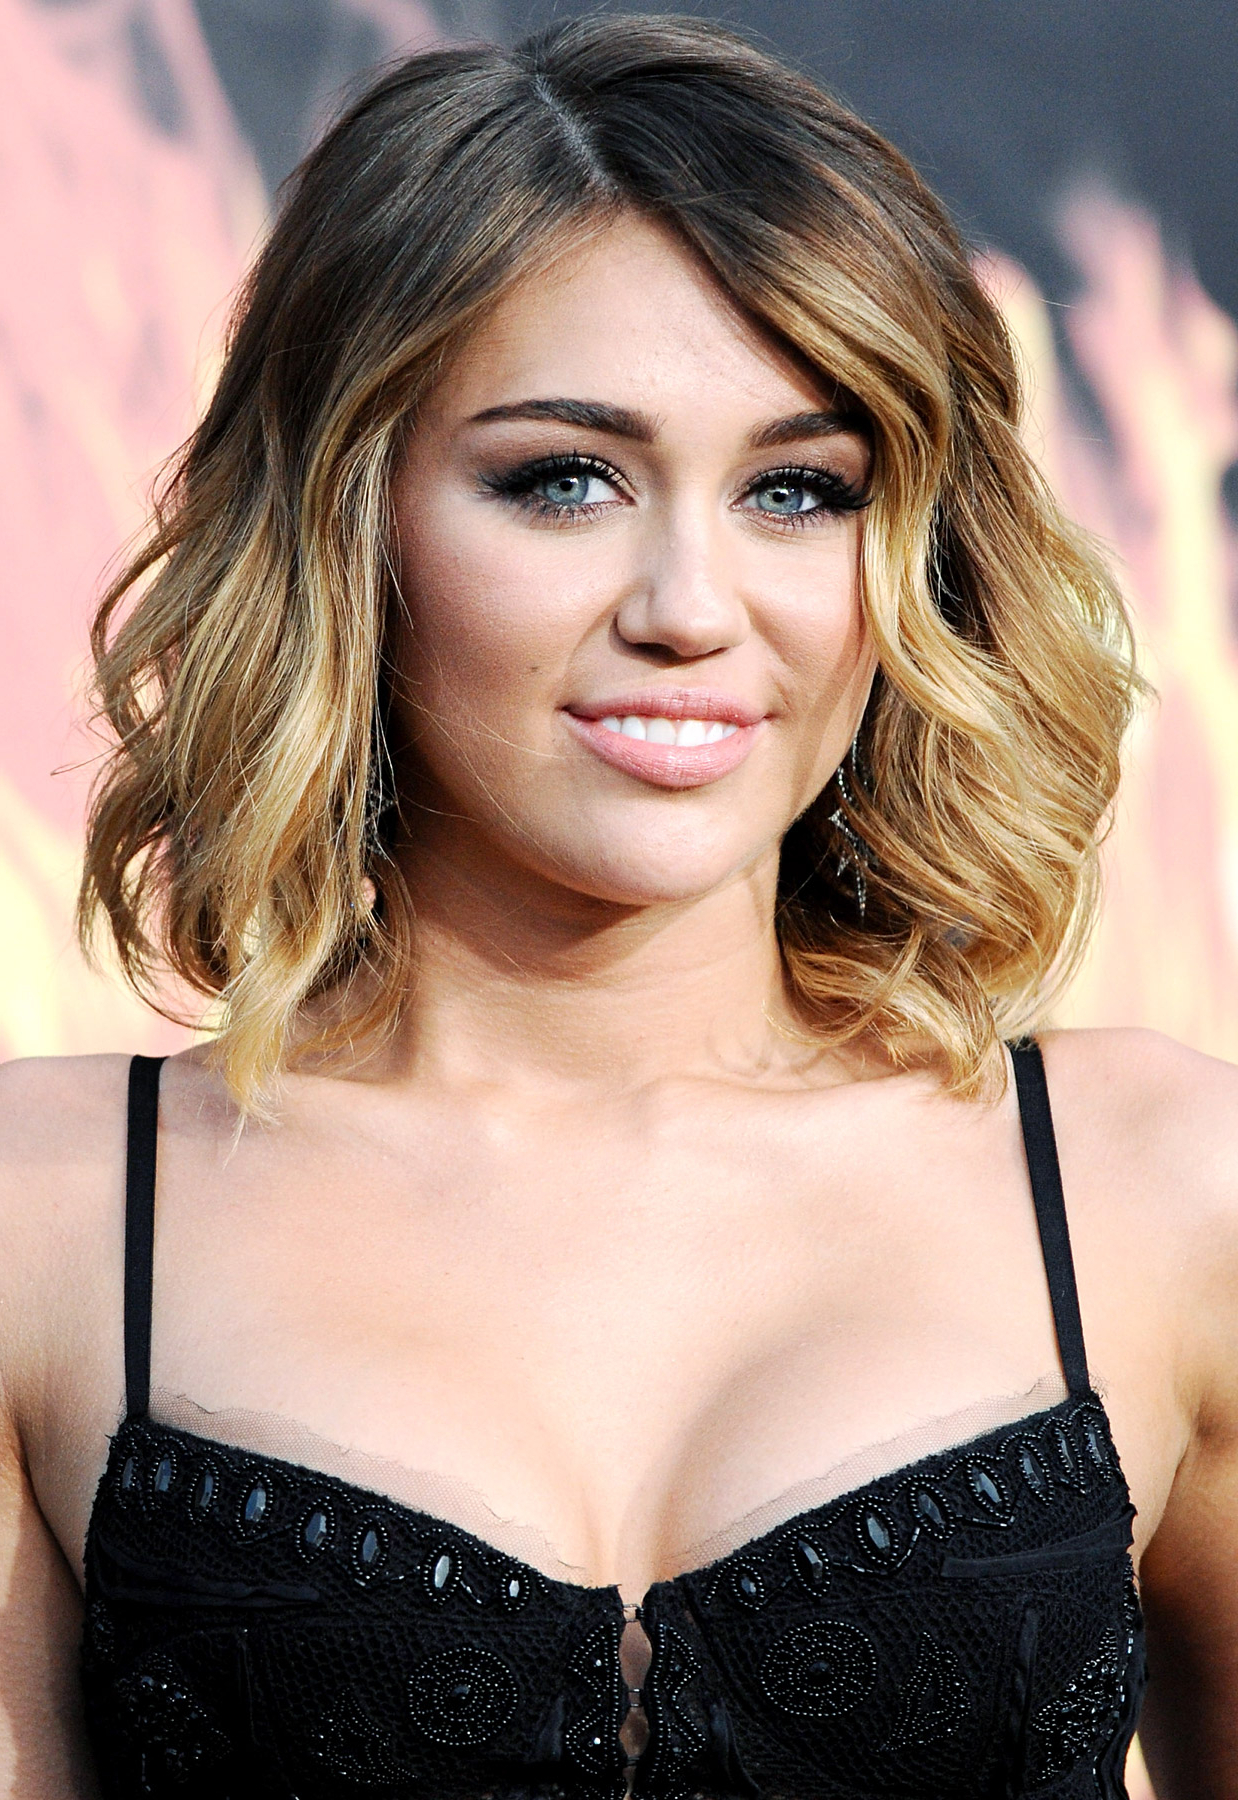 2015 Miley Cyrus Hairstyles Hairstyle 2015 Pertaining To Famous Medium Haircuts Like Miley Cyrus (View 1 of 20)